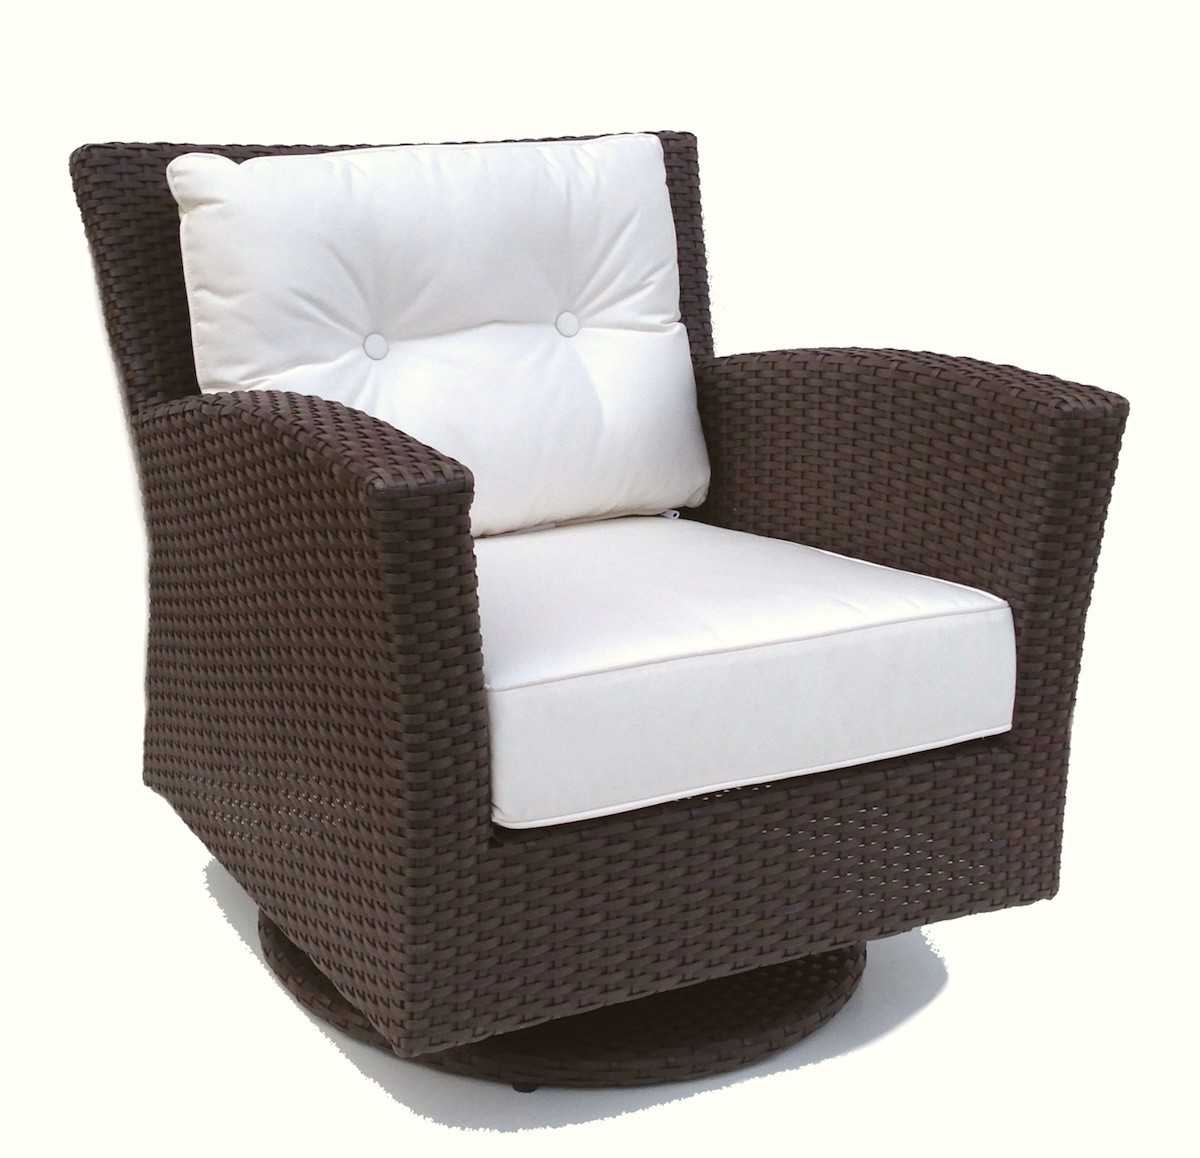 Current Outdoor Wicker Swivel Rocker Collection Also Beautiful Rocking With Patio Rocking Chairs With Ottoman (View 7 of 15)